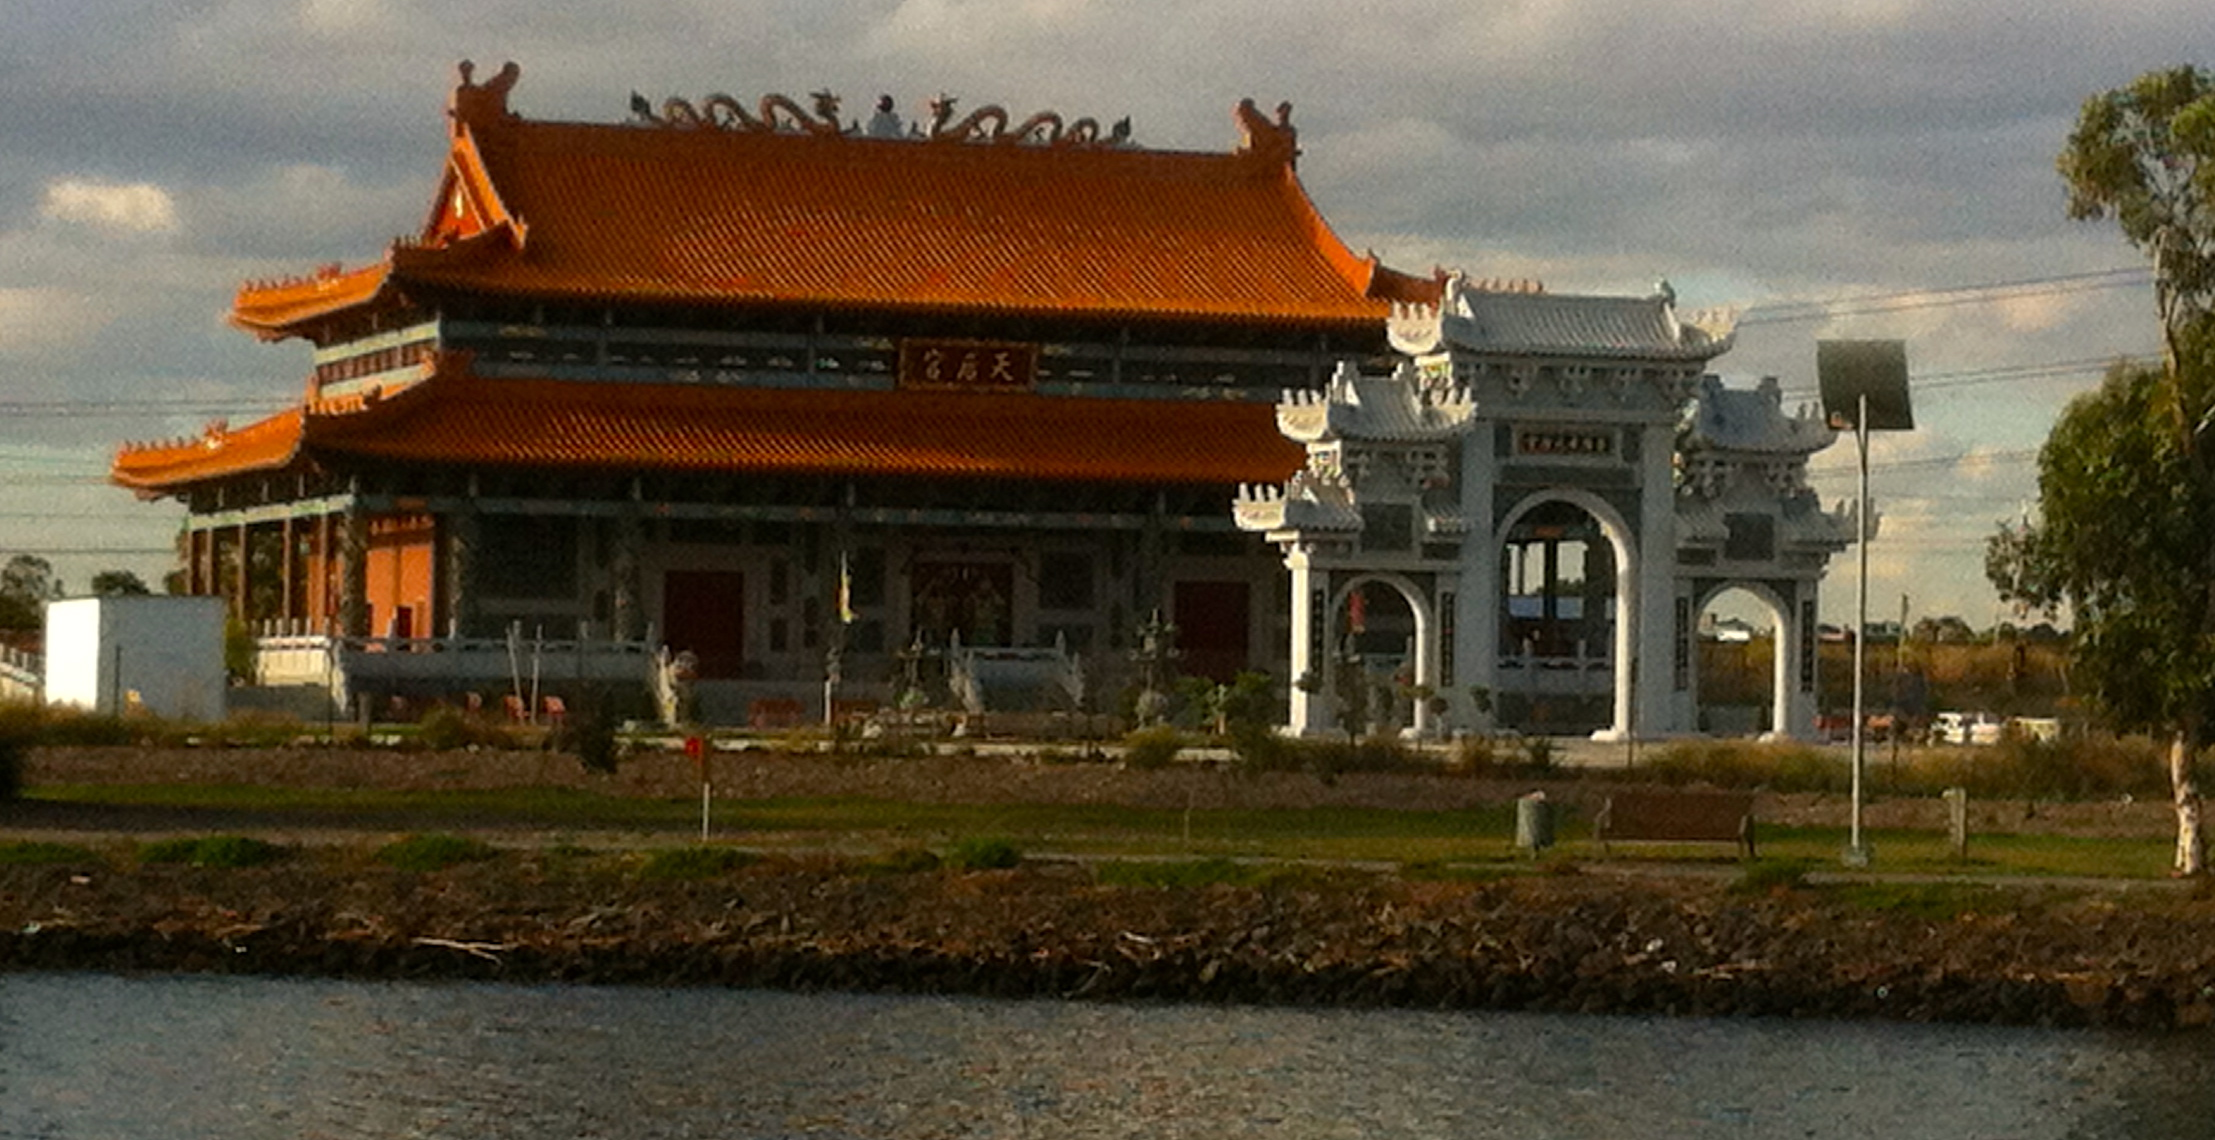 Home - Heavenly Queen Temple Melbourne